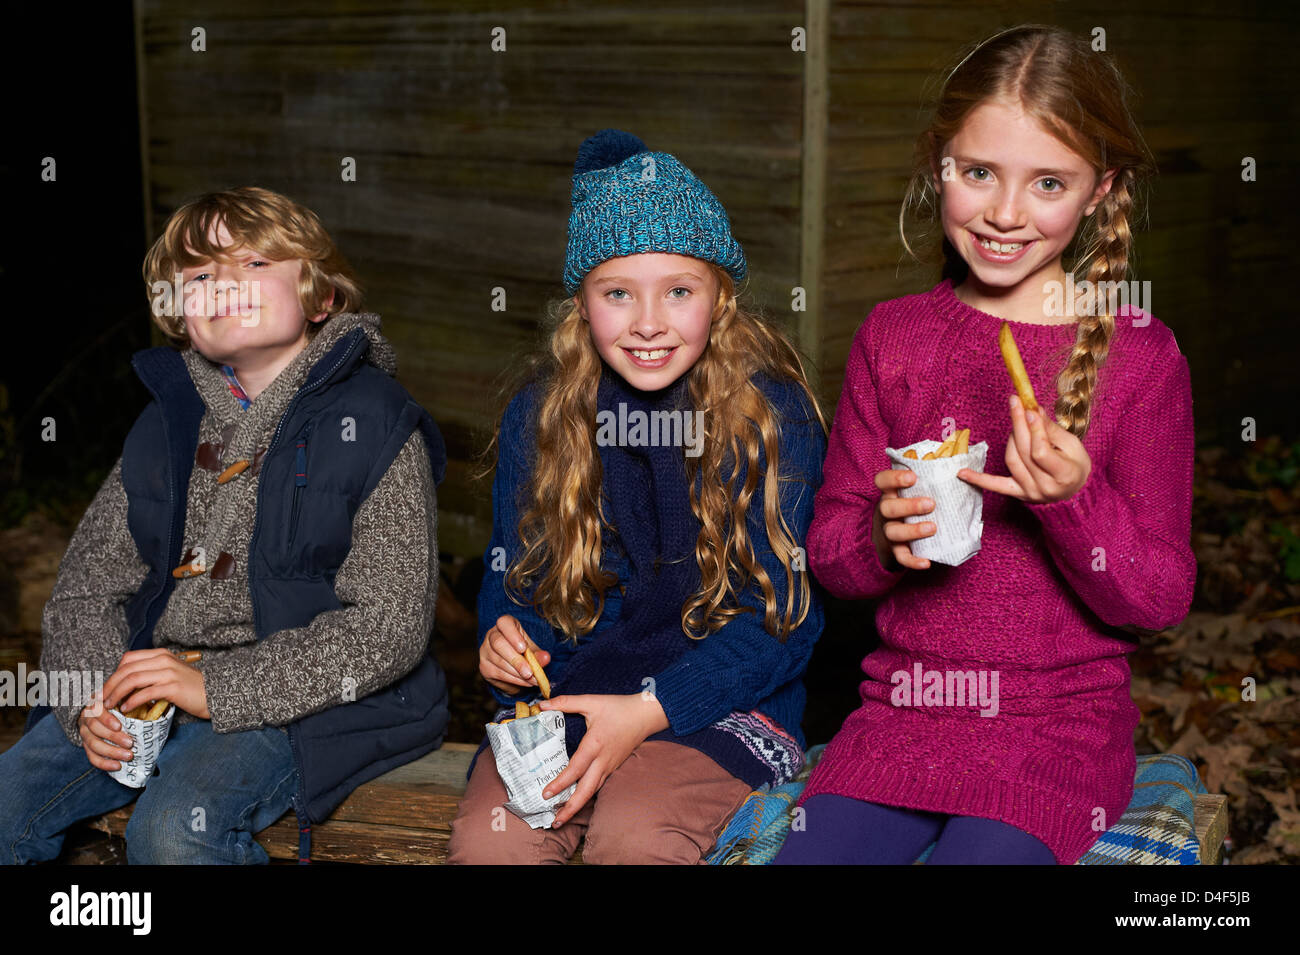 Smiling children eating french fries at night - Stock Image